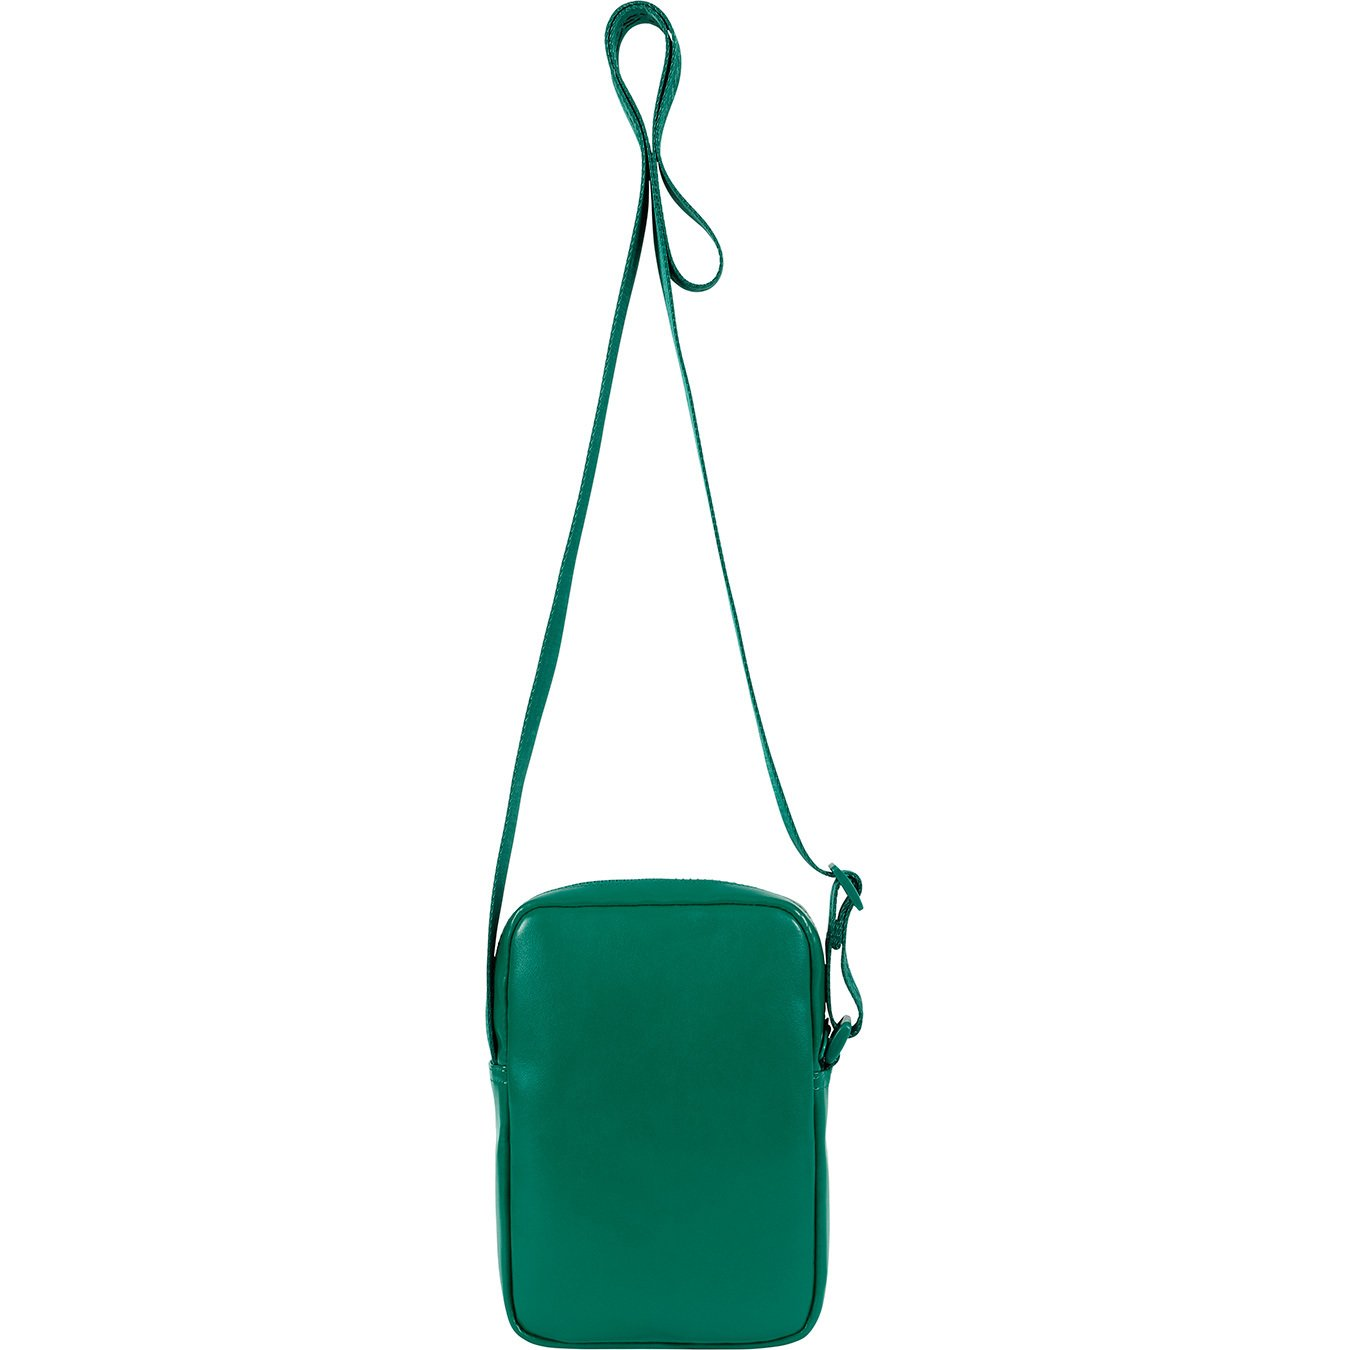 supreme-lacoste-18ss-collaboration-release-201180421-shoulder-bag